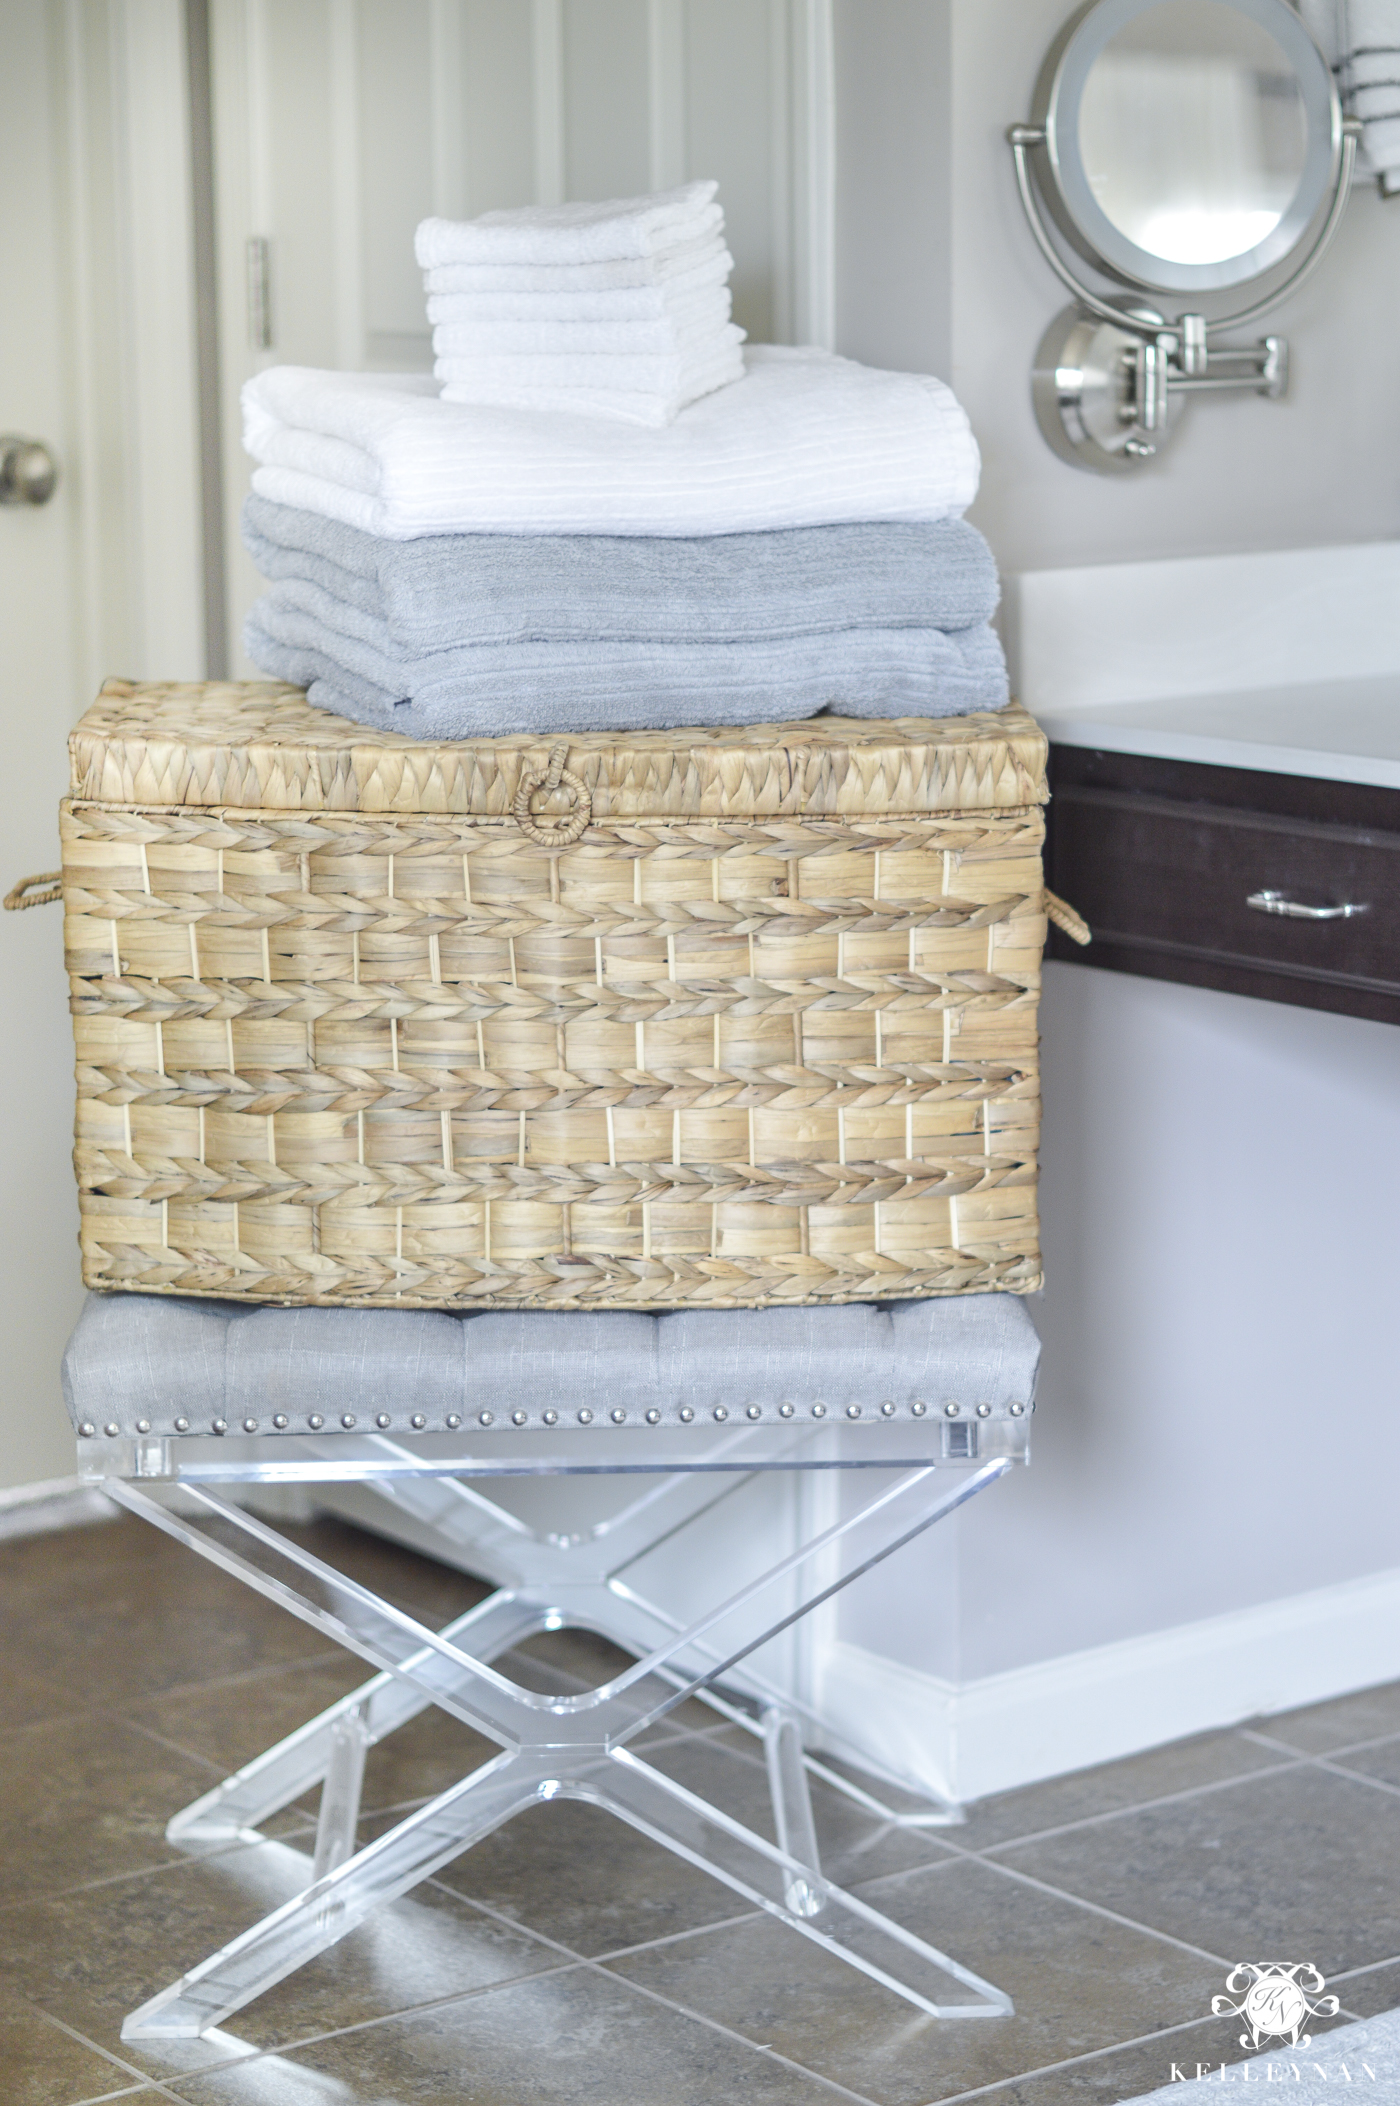 Organized Bathroom Linen Closet With Towels And Baskets (12 Of 14)